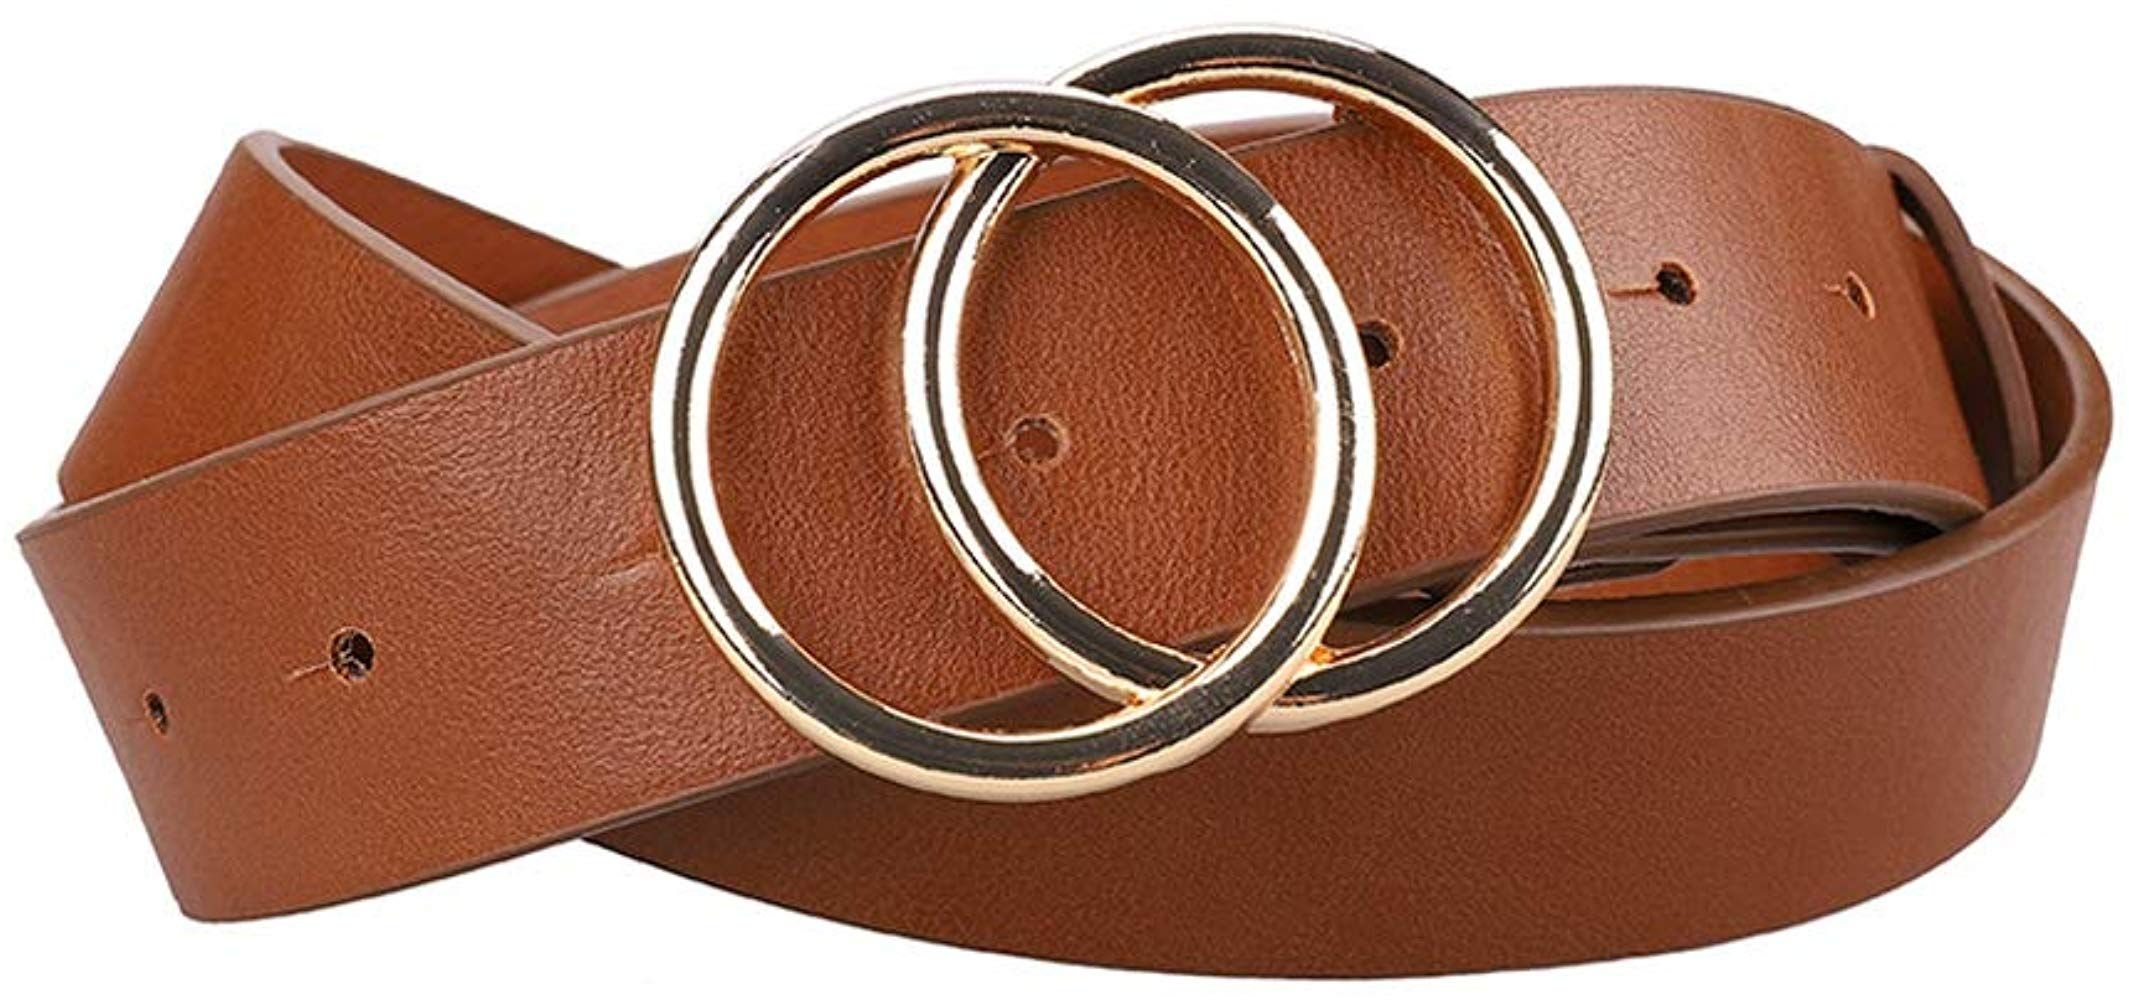 Earnda Womens Leather Belt Fashion Soft Faux Leather Waist Belts For Jeans Dress